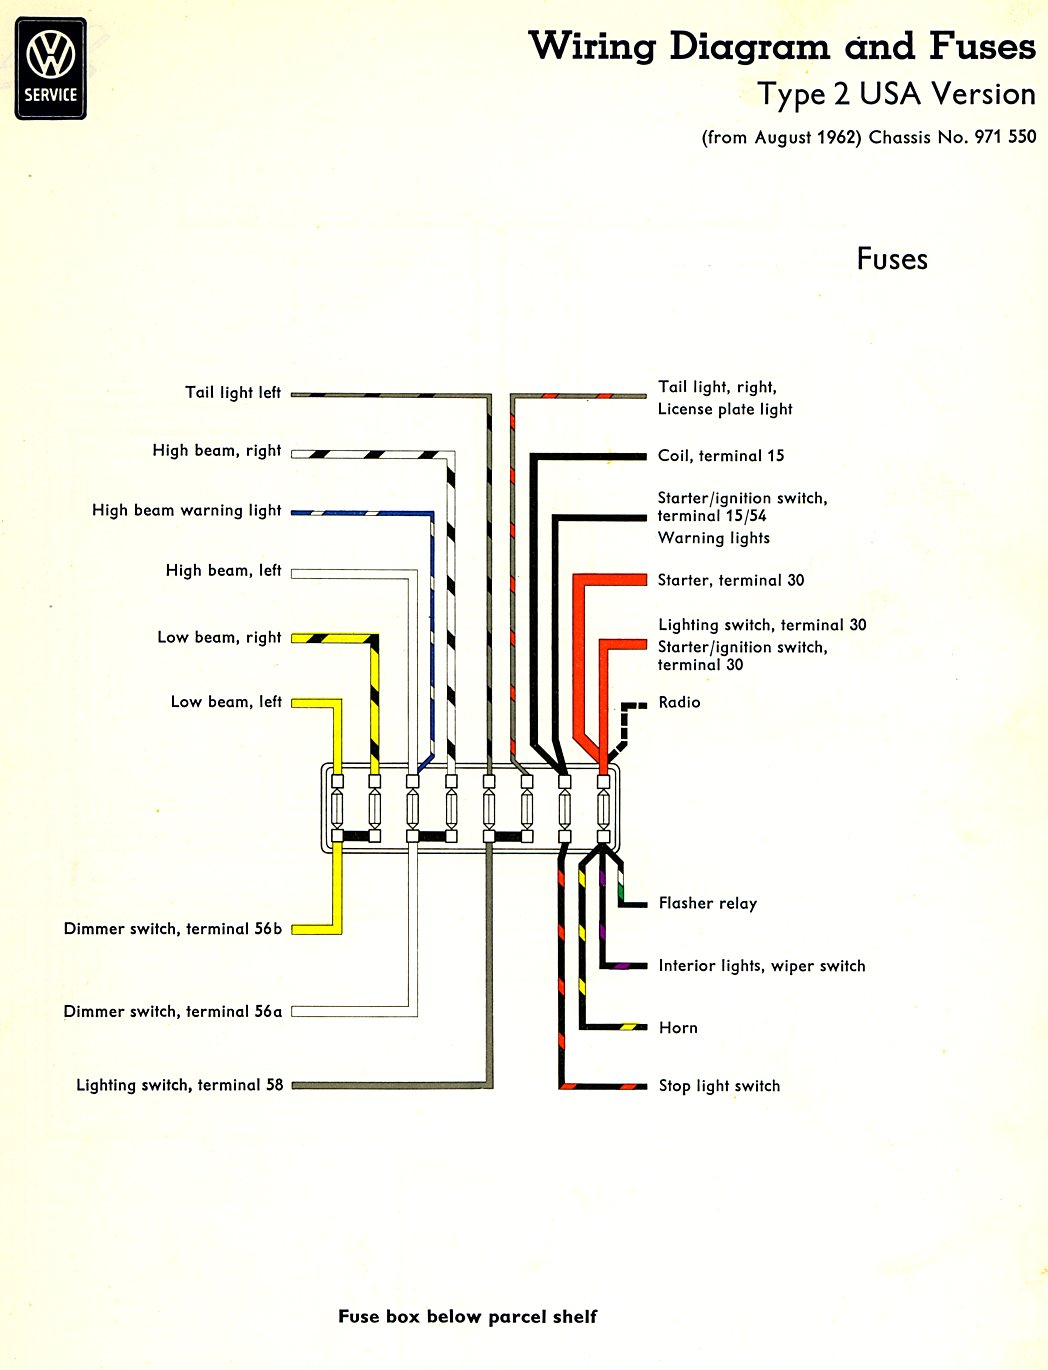 Type 2 Wiring Diagrams Dodge Viper Diagram Free Download